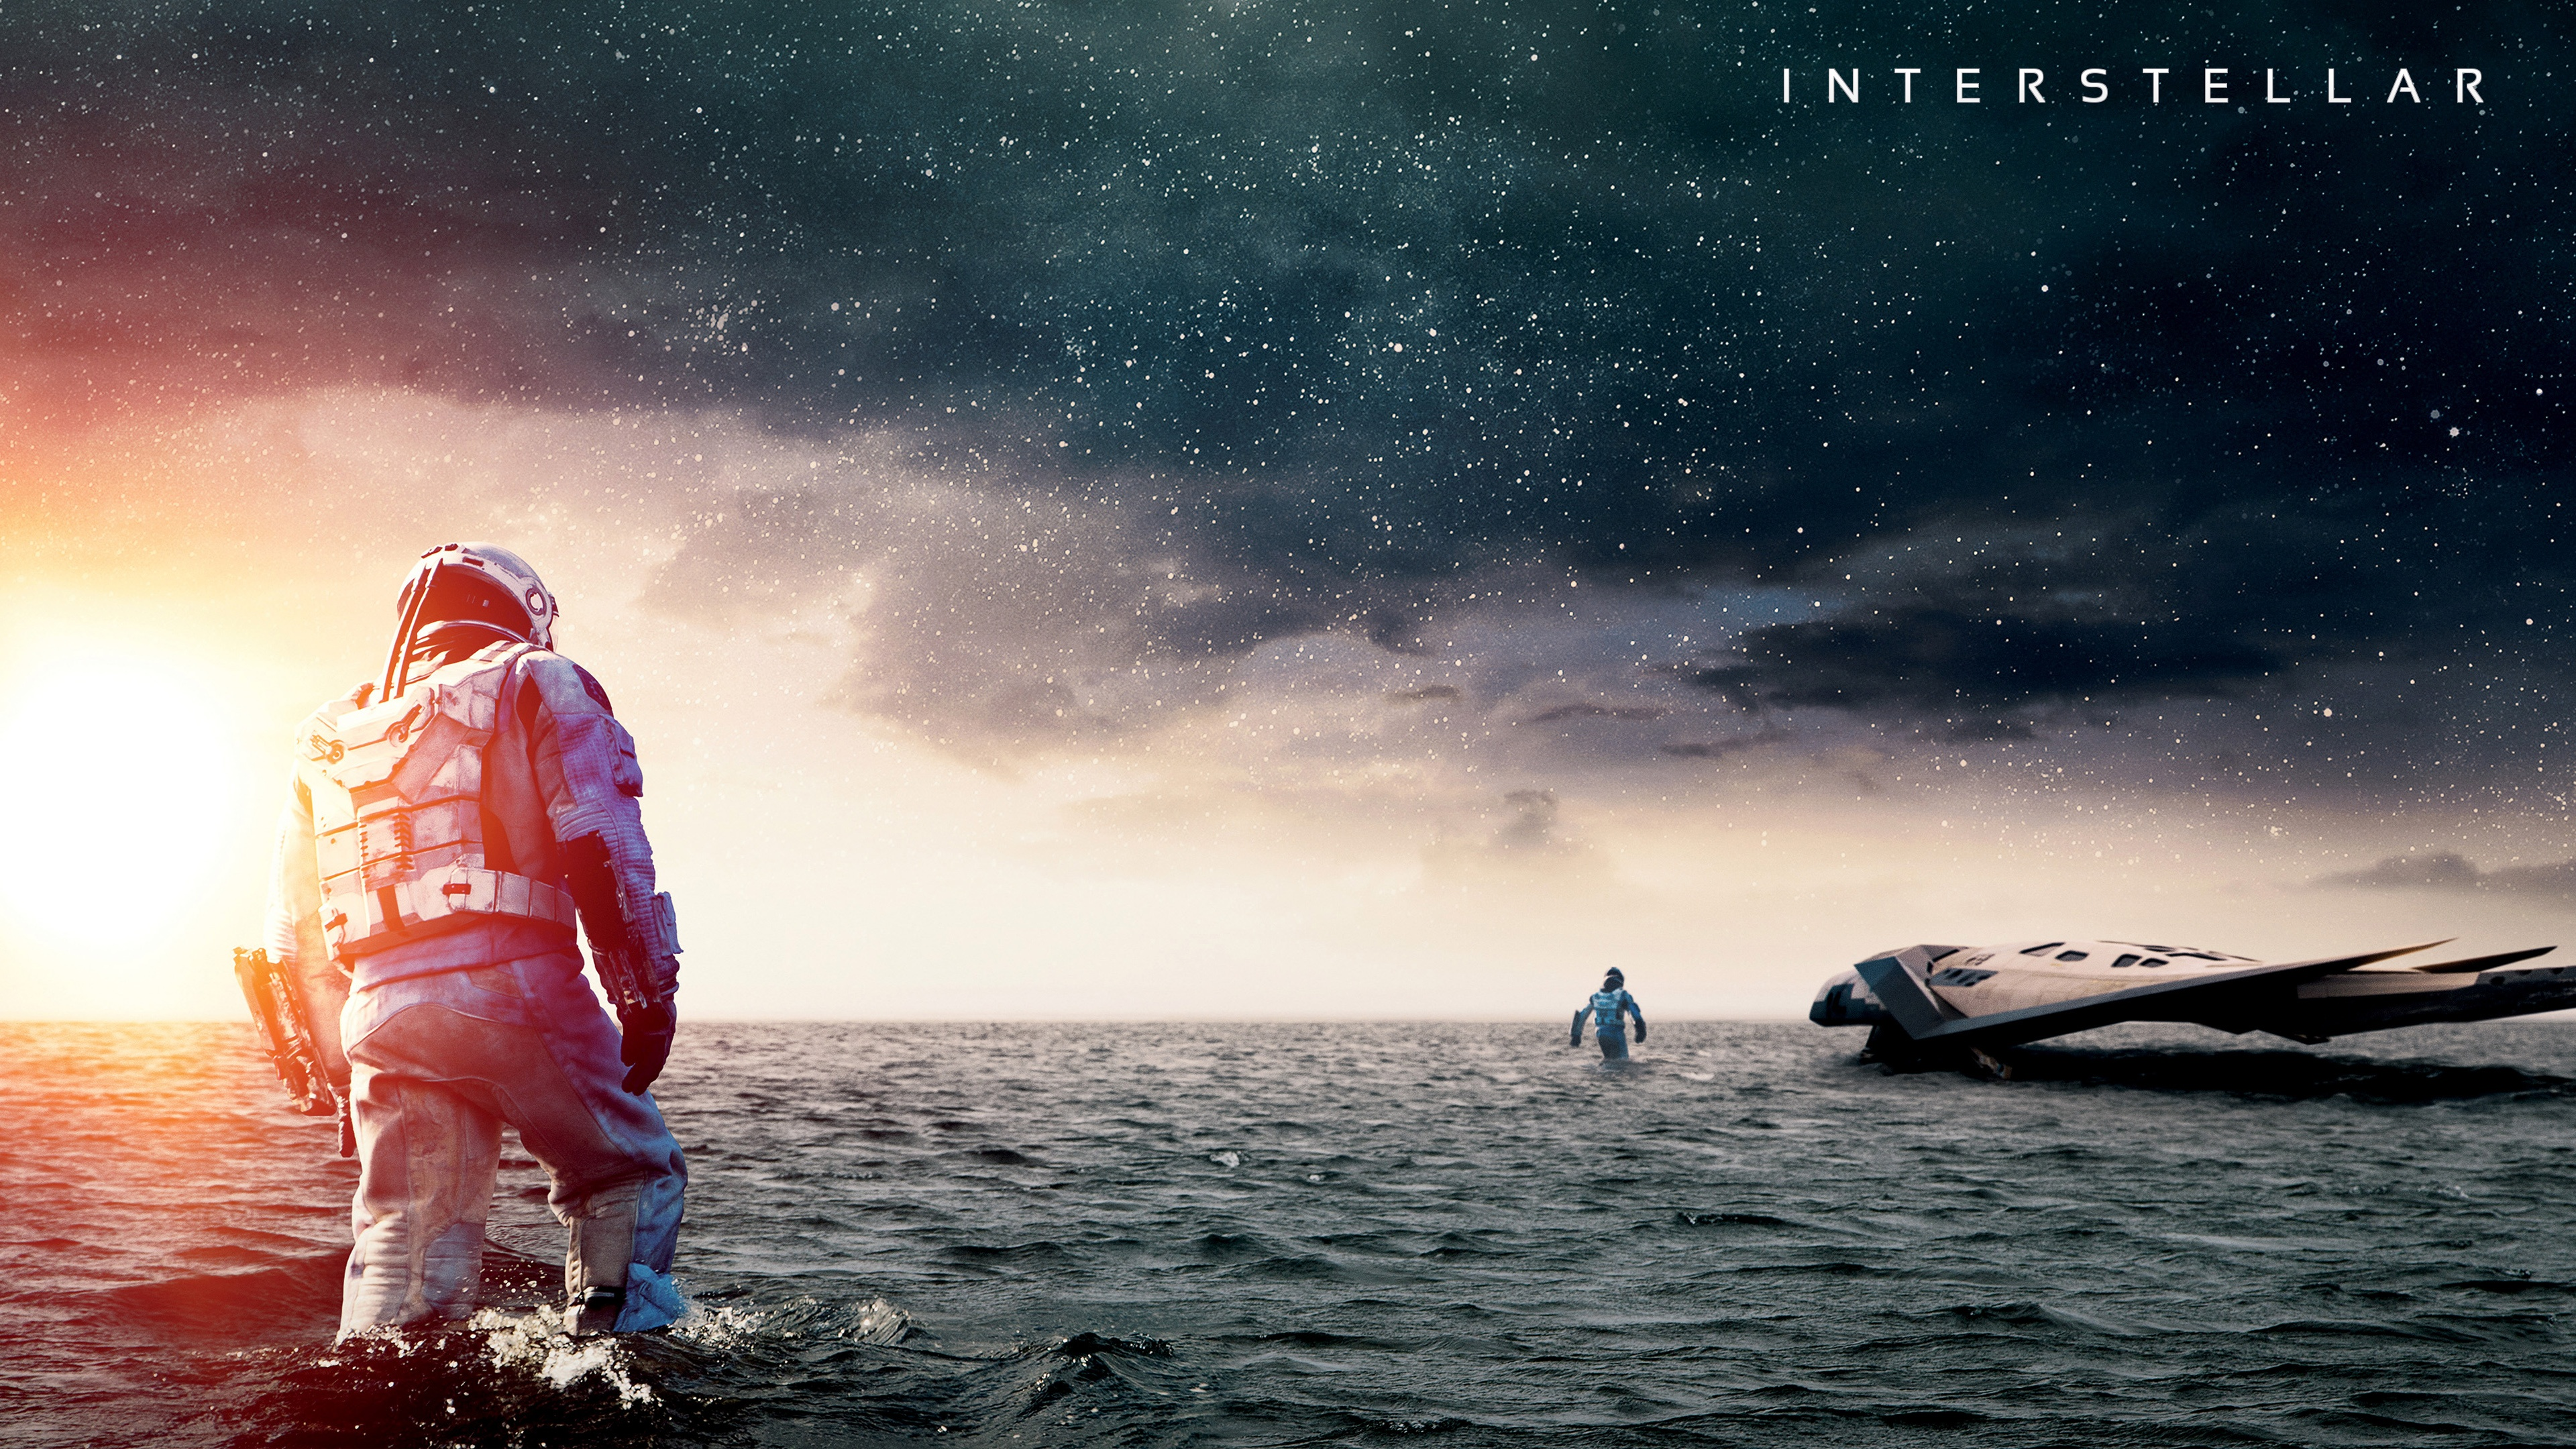 20150403-interstellar-3840x2160.jpg